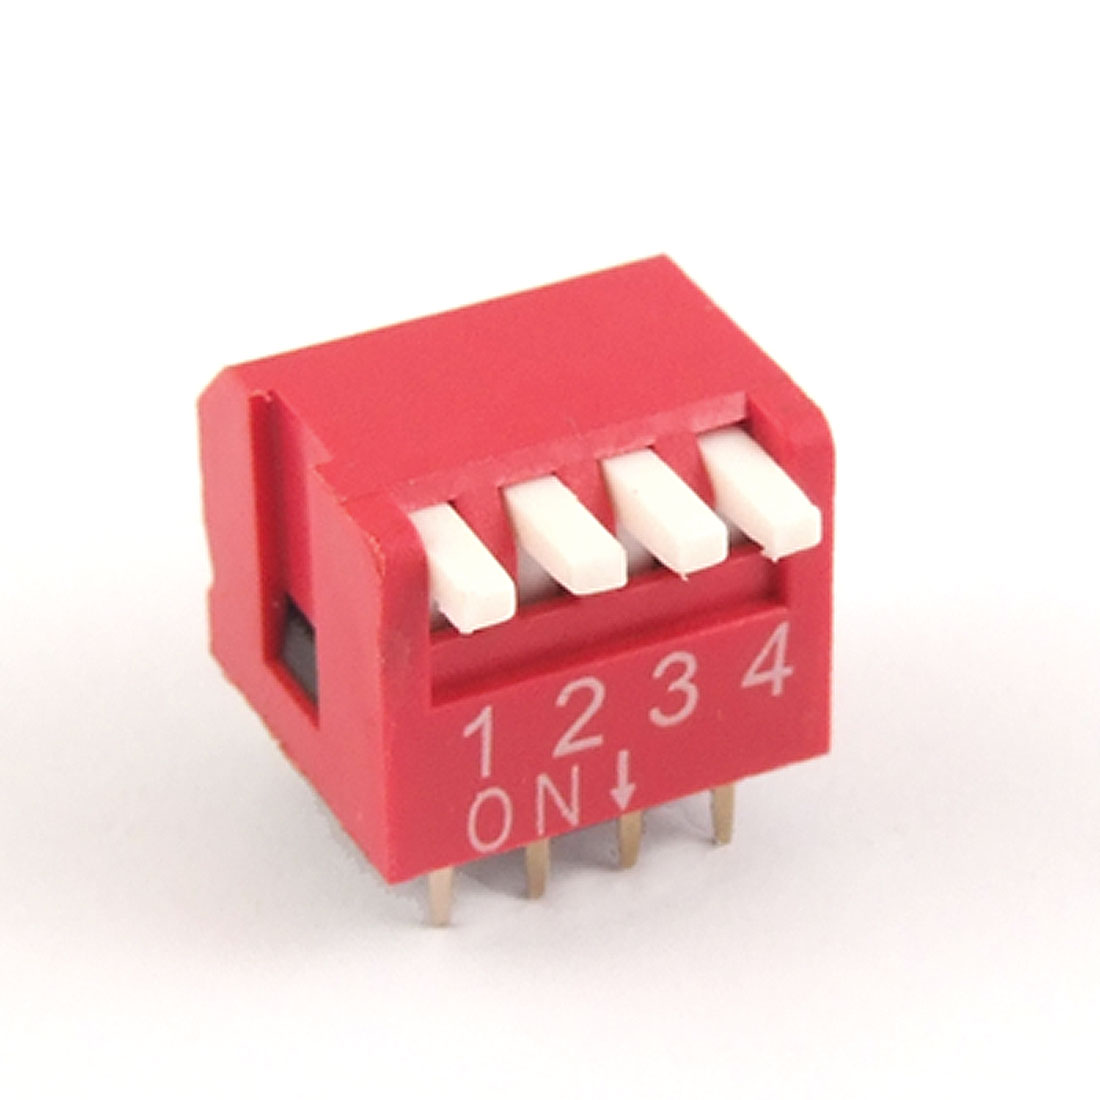 10 Pcs 2.54mm Pitch 4 Position Piano Type DIP Switches Red